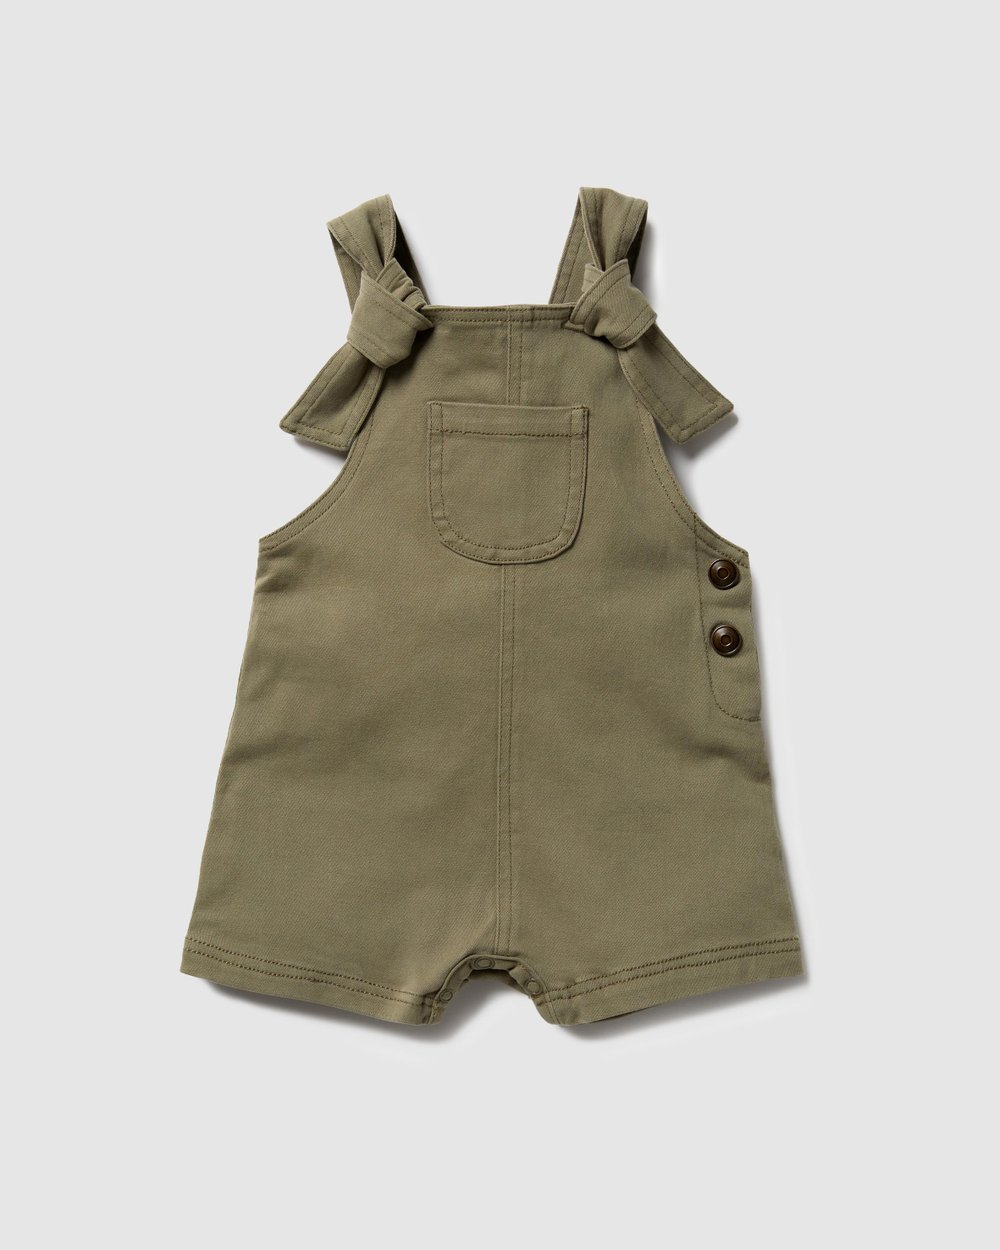 Stretch Drill Knotted Overall Babies By Wilson Frenchy Online Gov Australia